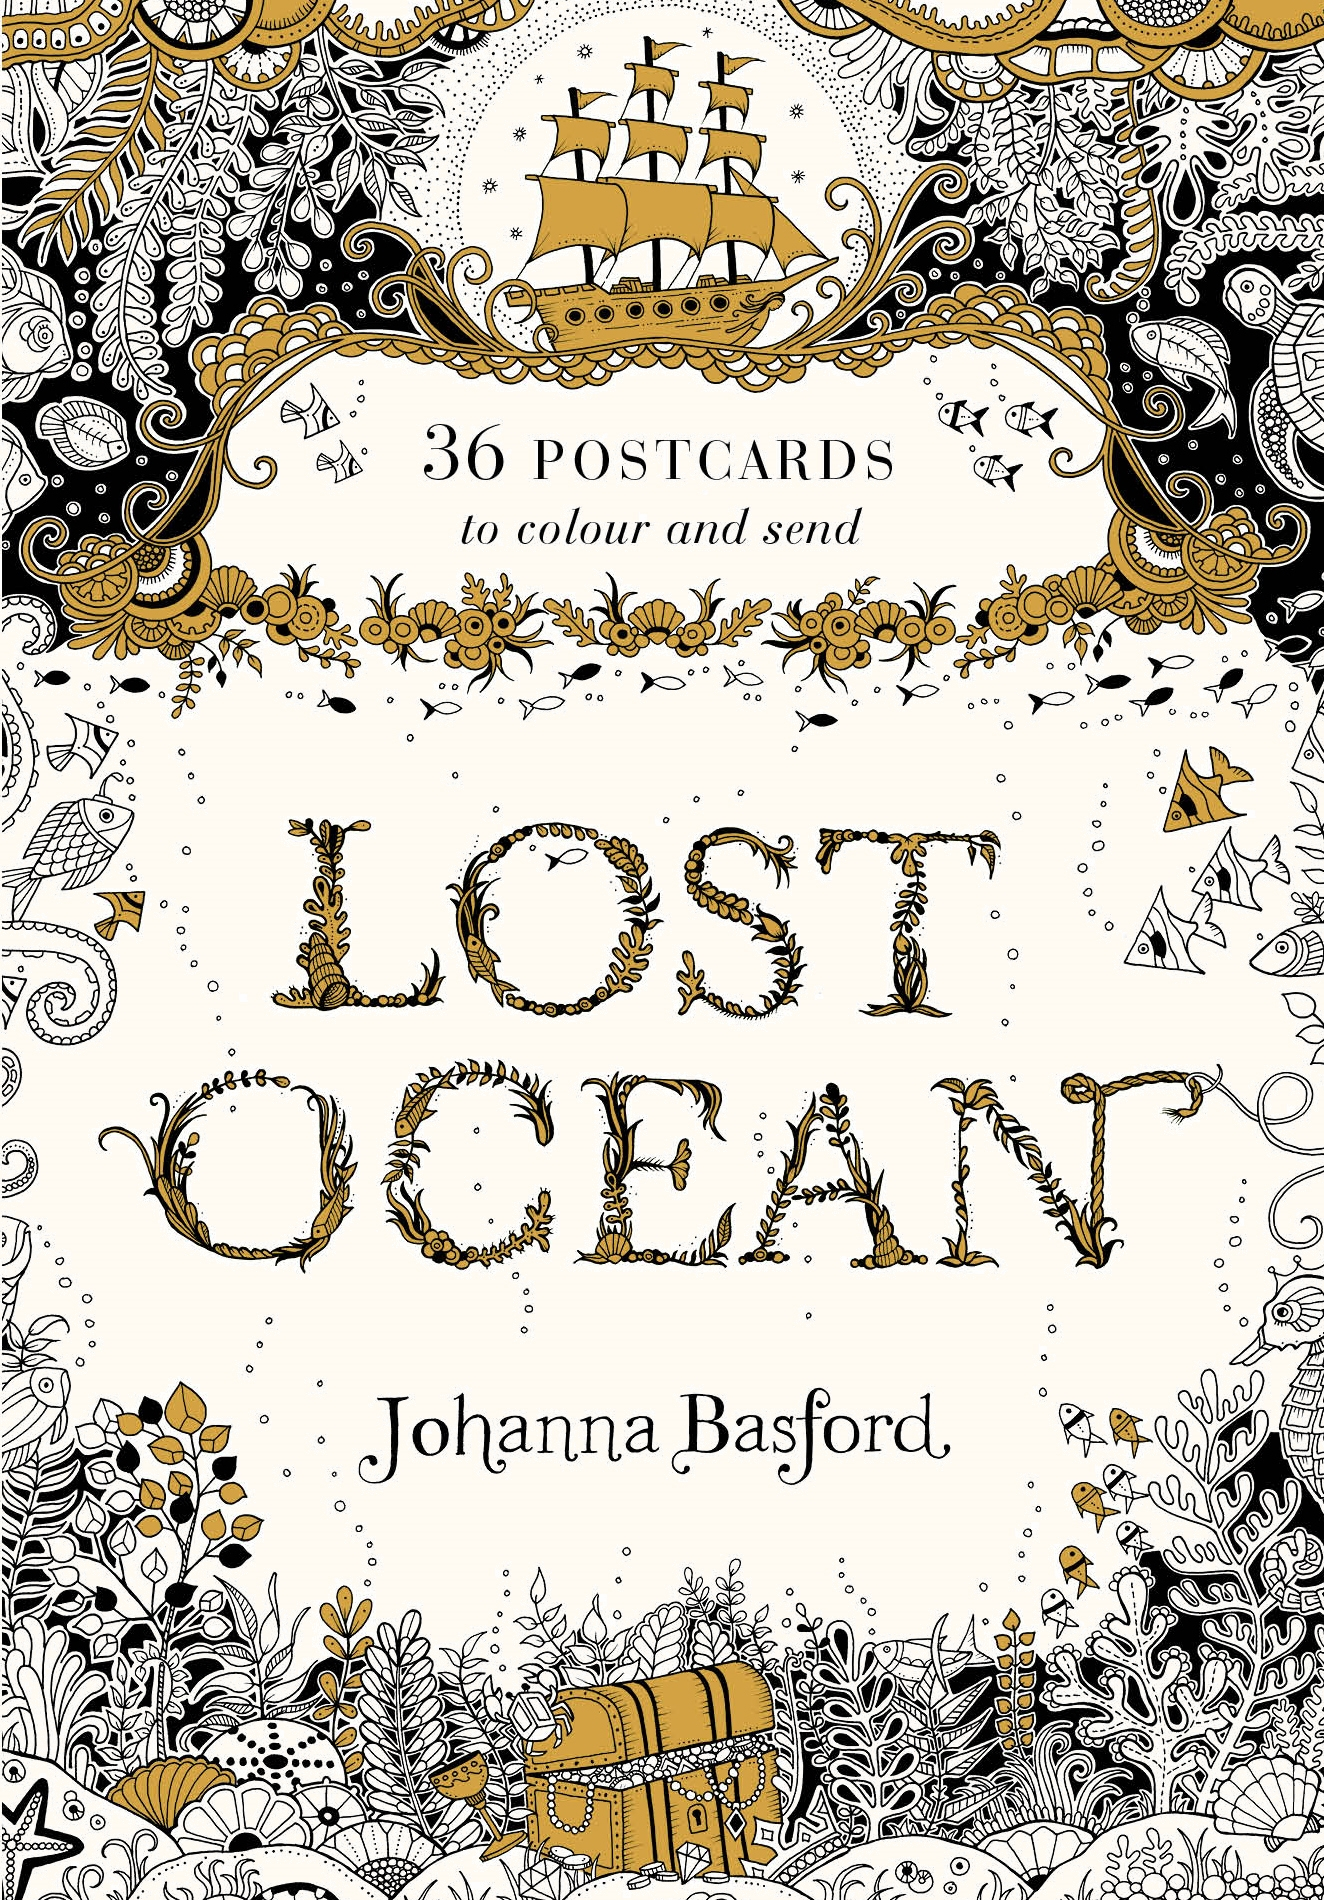 Lost Ocean Postcard Edition 36 Postcards To Colour And Send By Johanna Basford